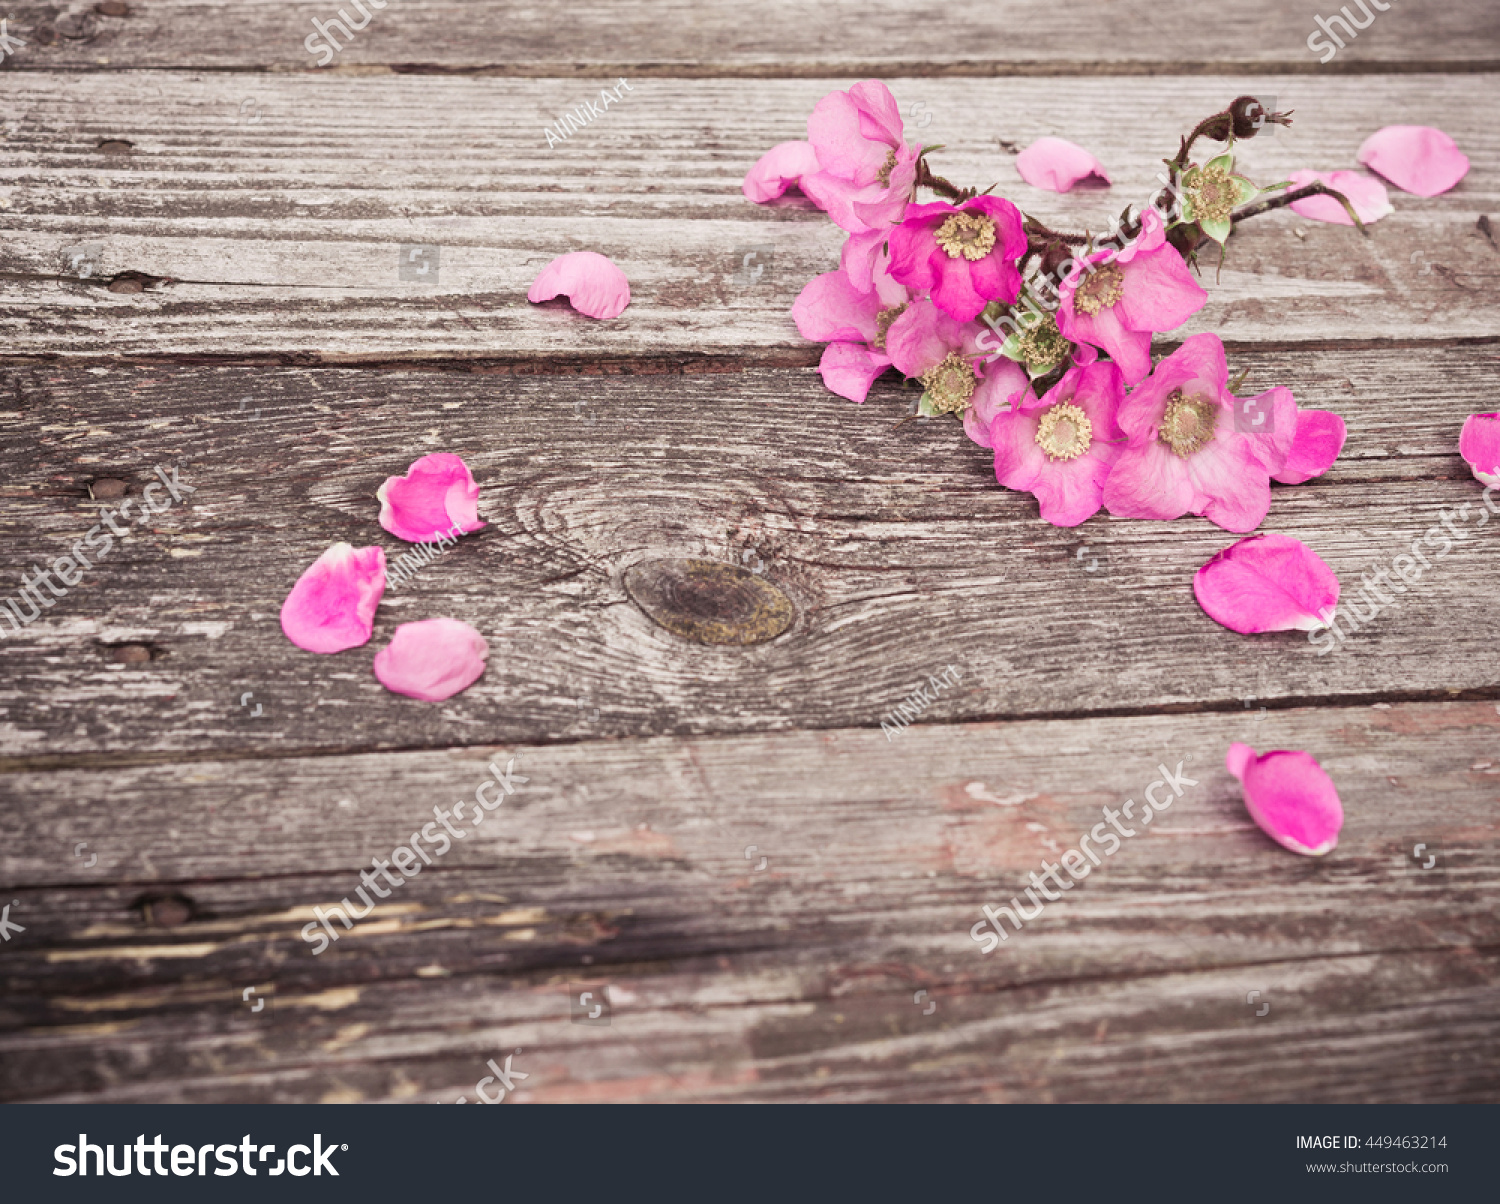 Pink Flowers And Petals On Rustic Old Wooden Table Vintage Floral Background